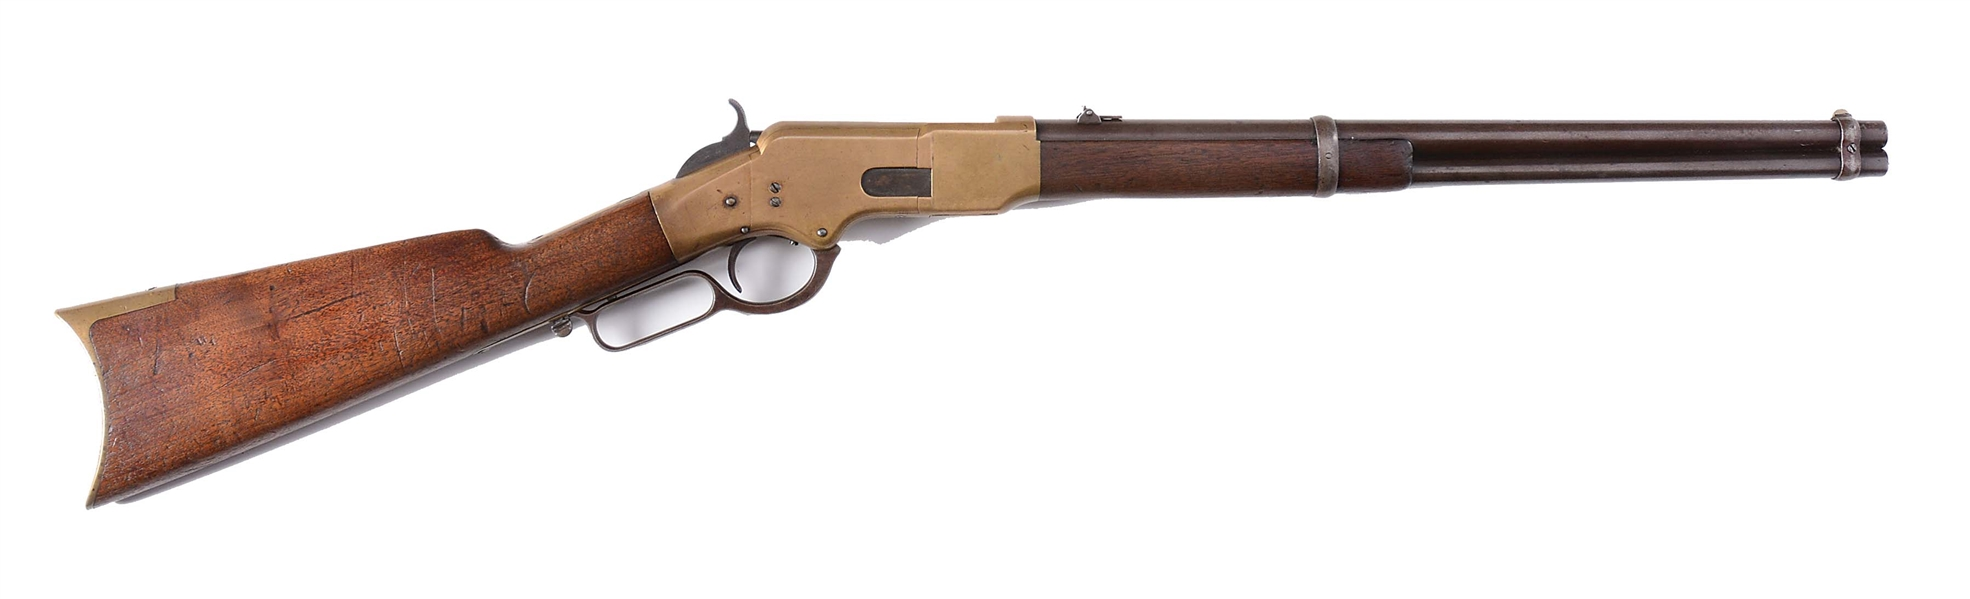 (A) 1ST YEAR PRODUCTION FLATSIDE WINCHESTER MODEL 1866 SADDLE RING CARBINE.